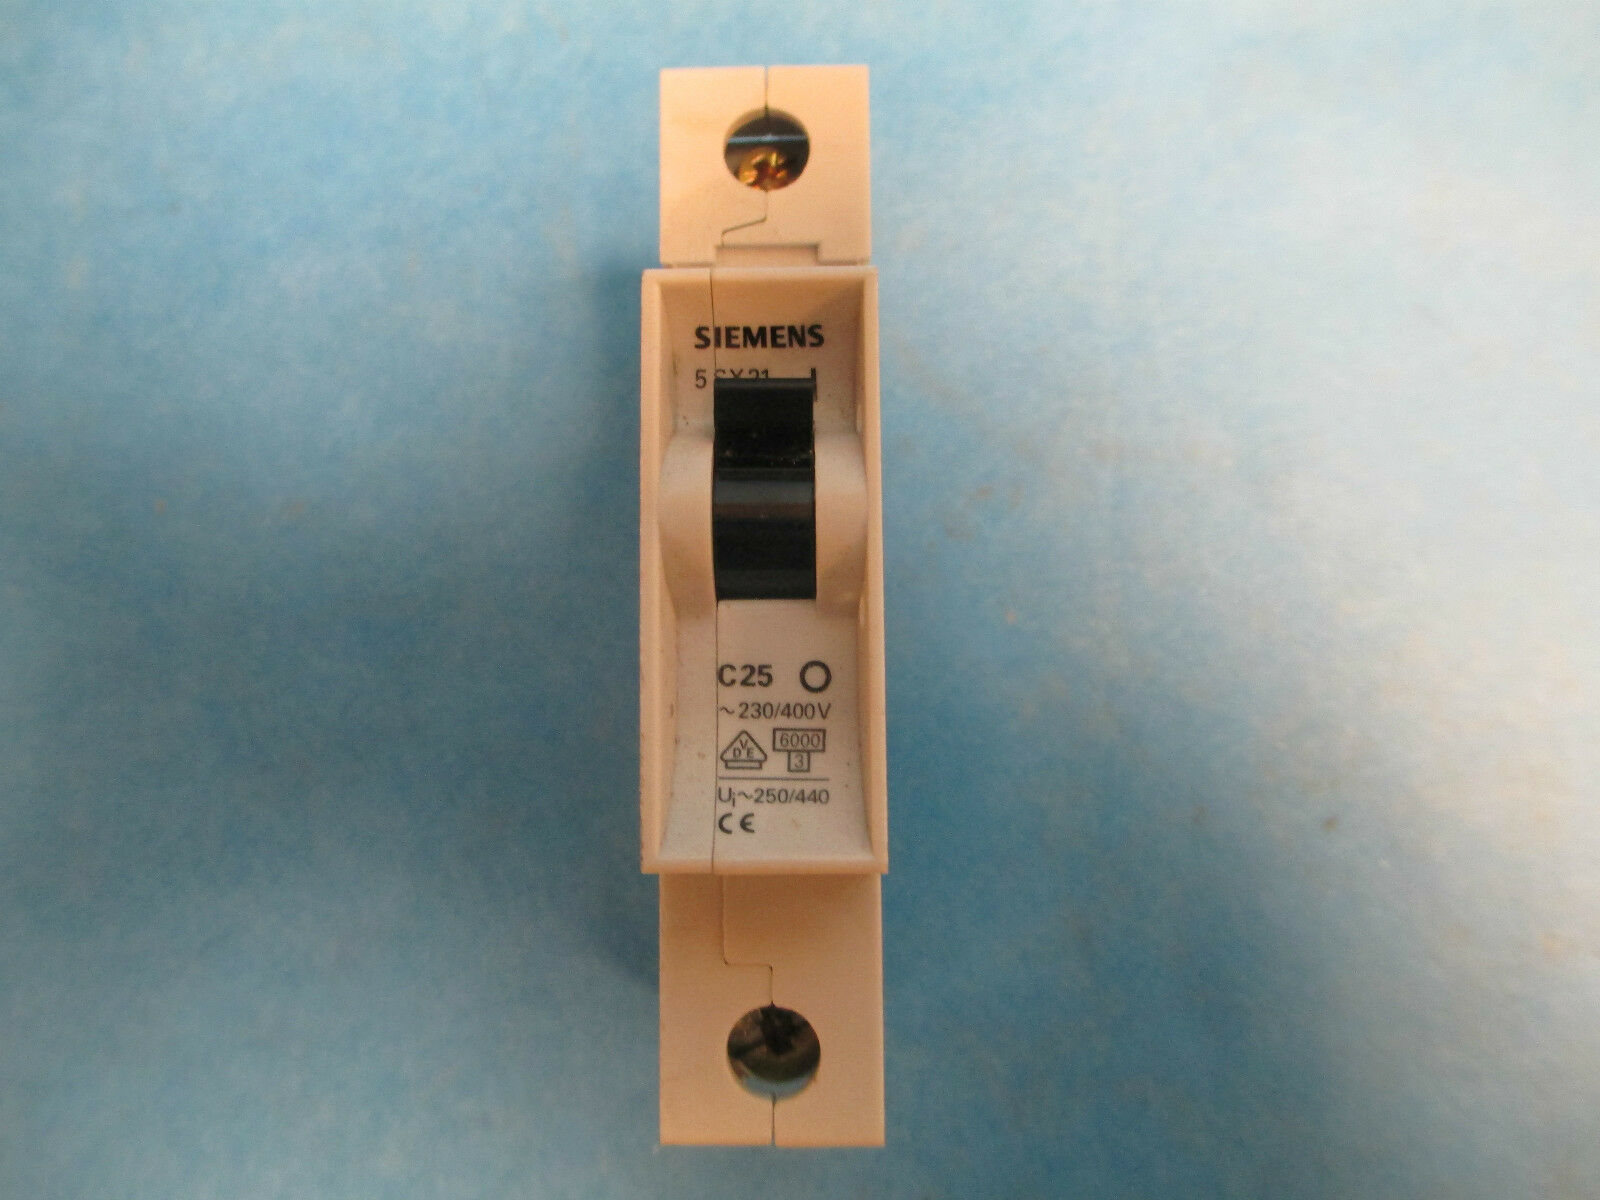 Siemens Circuit Breaker 5sx21 C25 1p 25a 230 400v 2000 Picclick Details About C5 5 Amp 1 Of 4only 4 Available